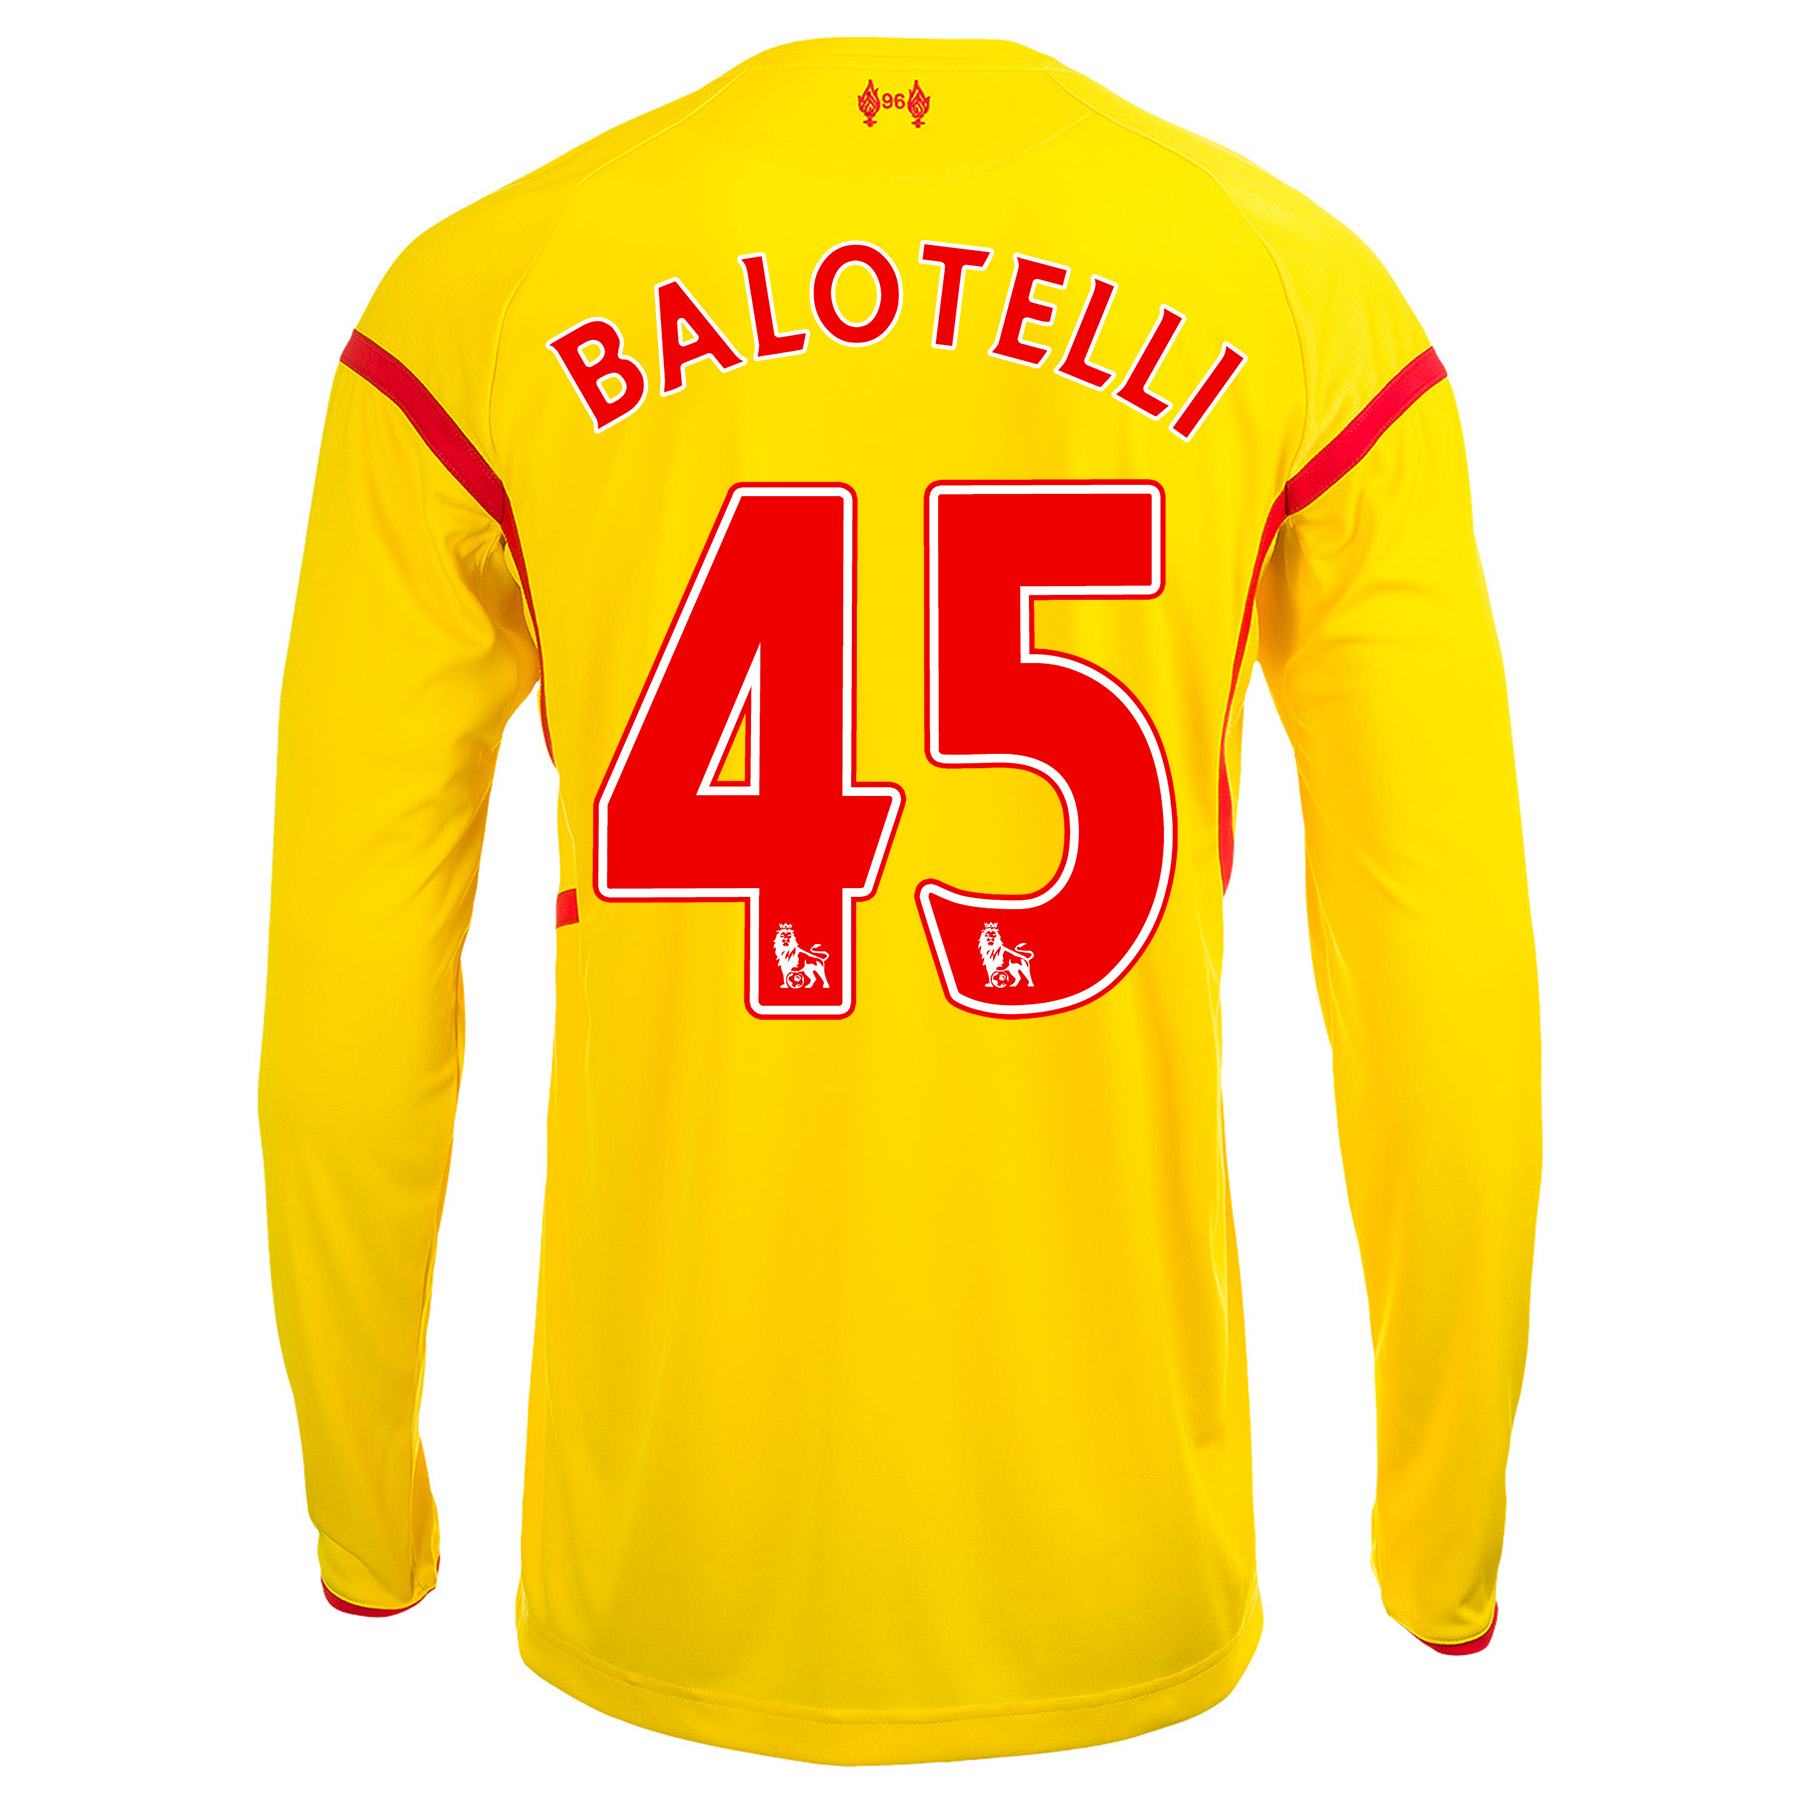 Liverpool Away Shirt 2014/15 Long Sleeve Kids with Balotelli 45 printing